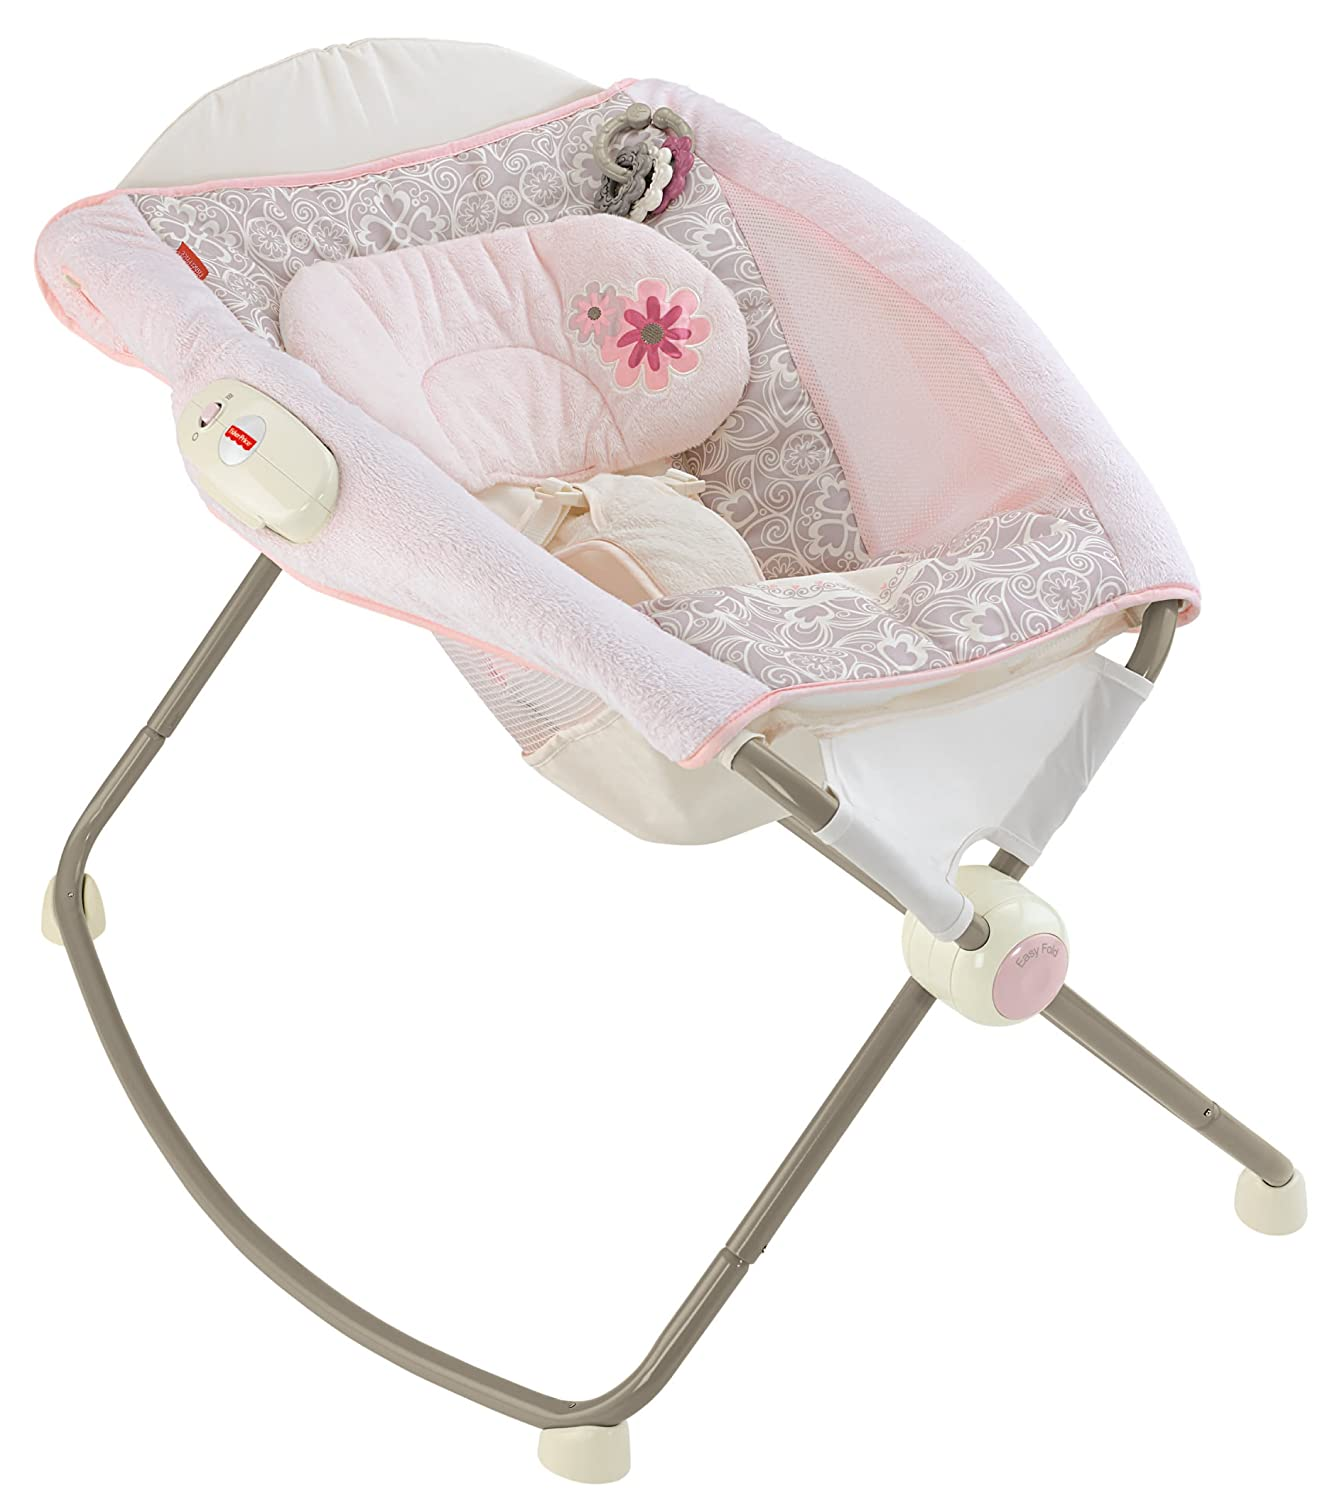 for informed alternative risks and sleep baby images news gear decisions well safety rock making n rocknplay play sleeper